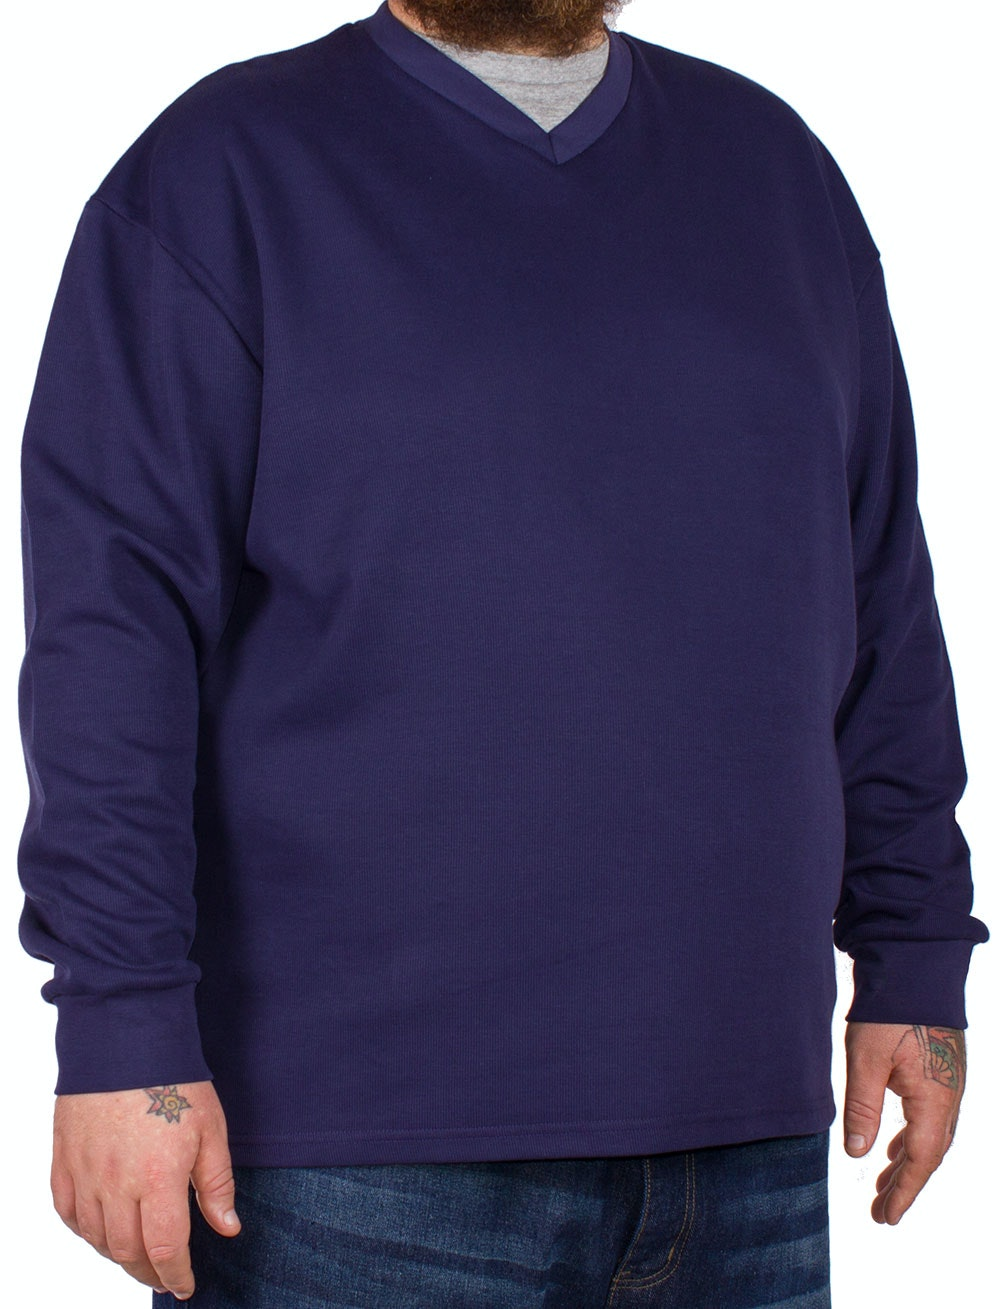 D555 Bliss Navy French Rib Layered V-Neck Jumper